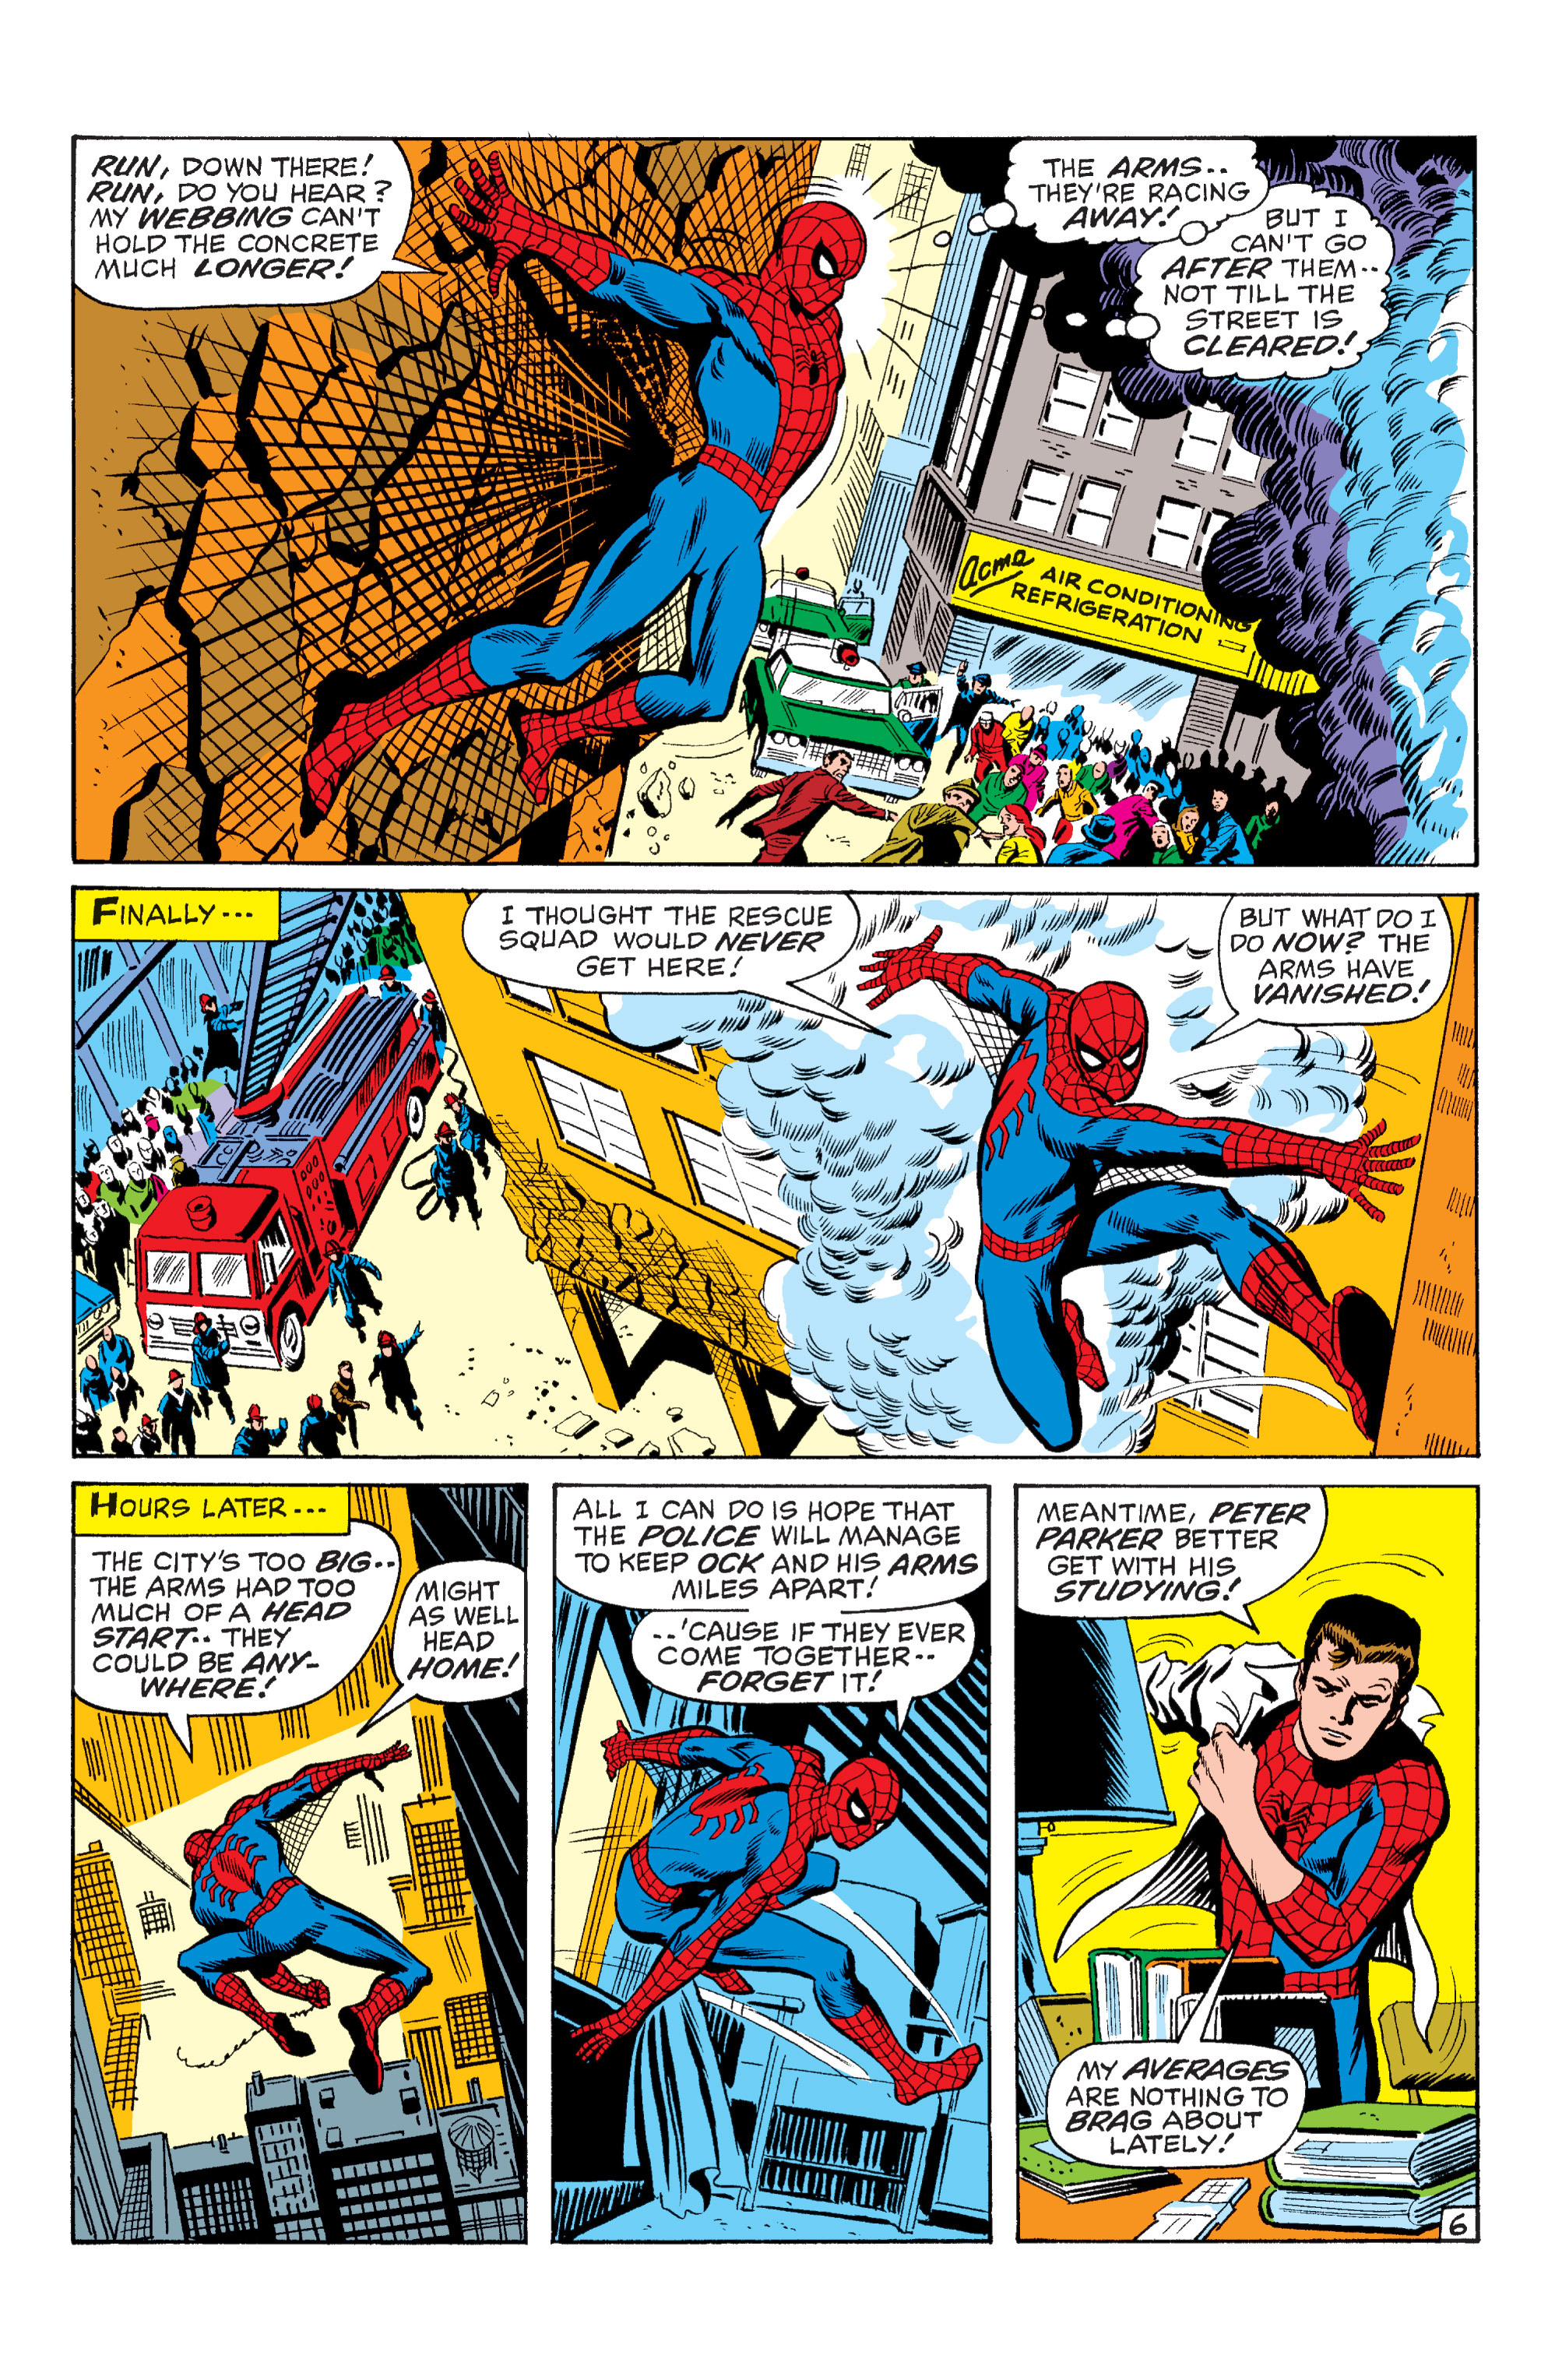 The Amazing Spider-Man (1963) 88 Page 6